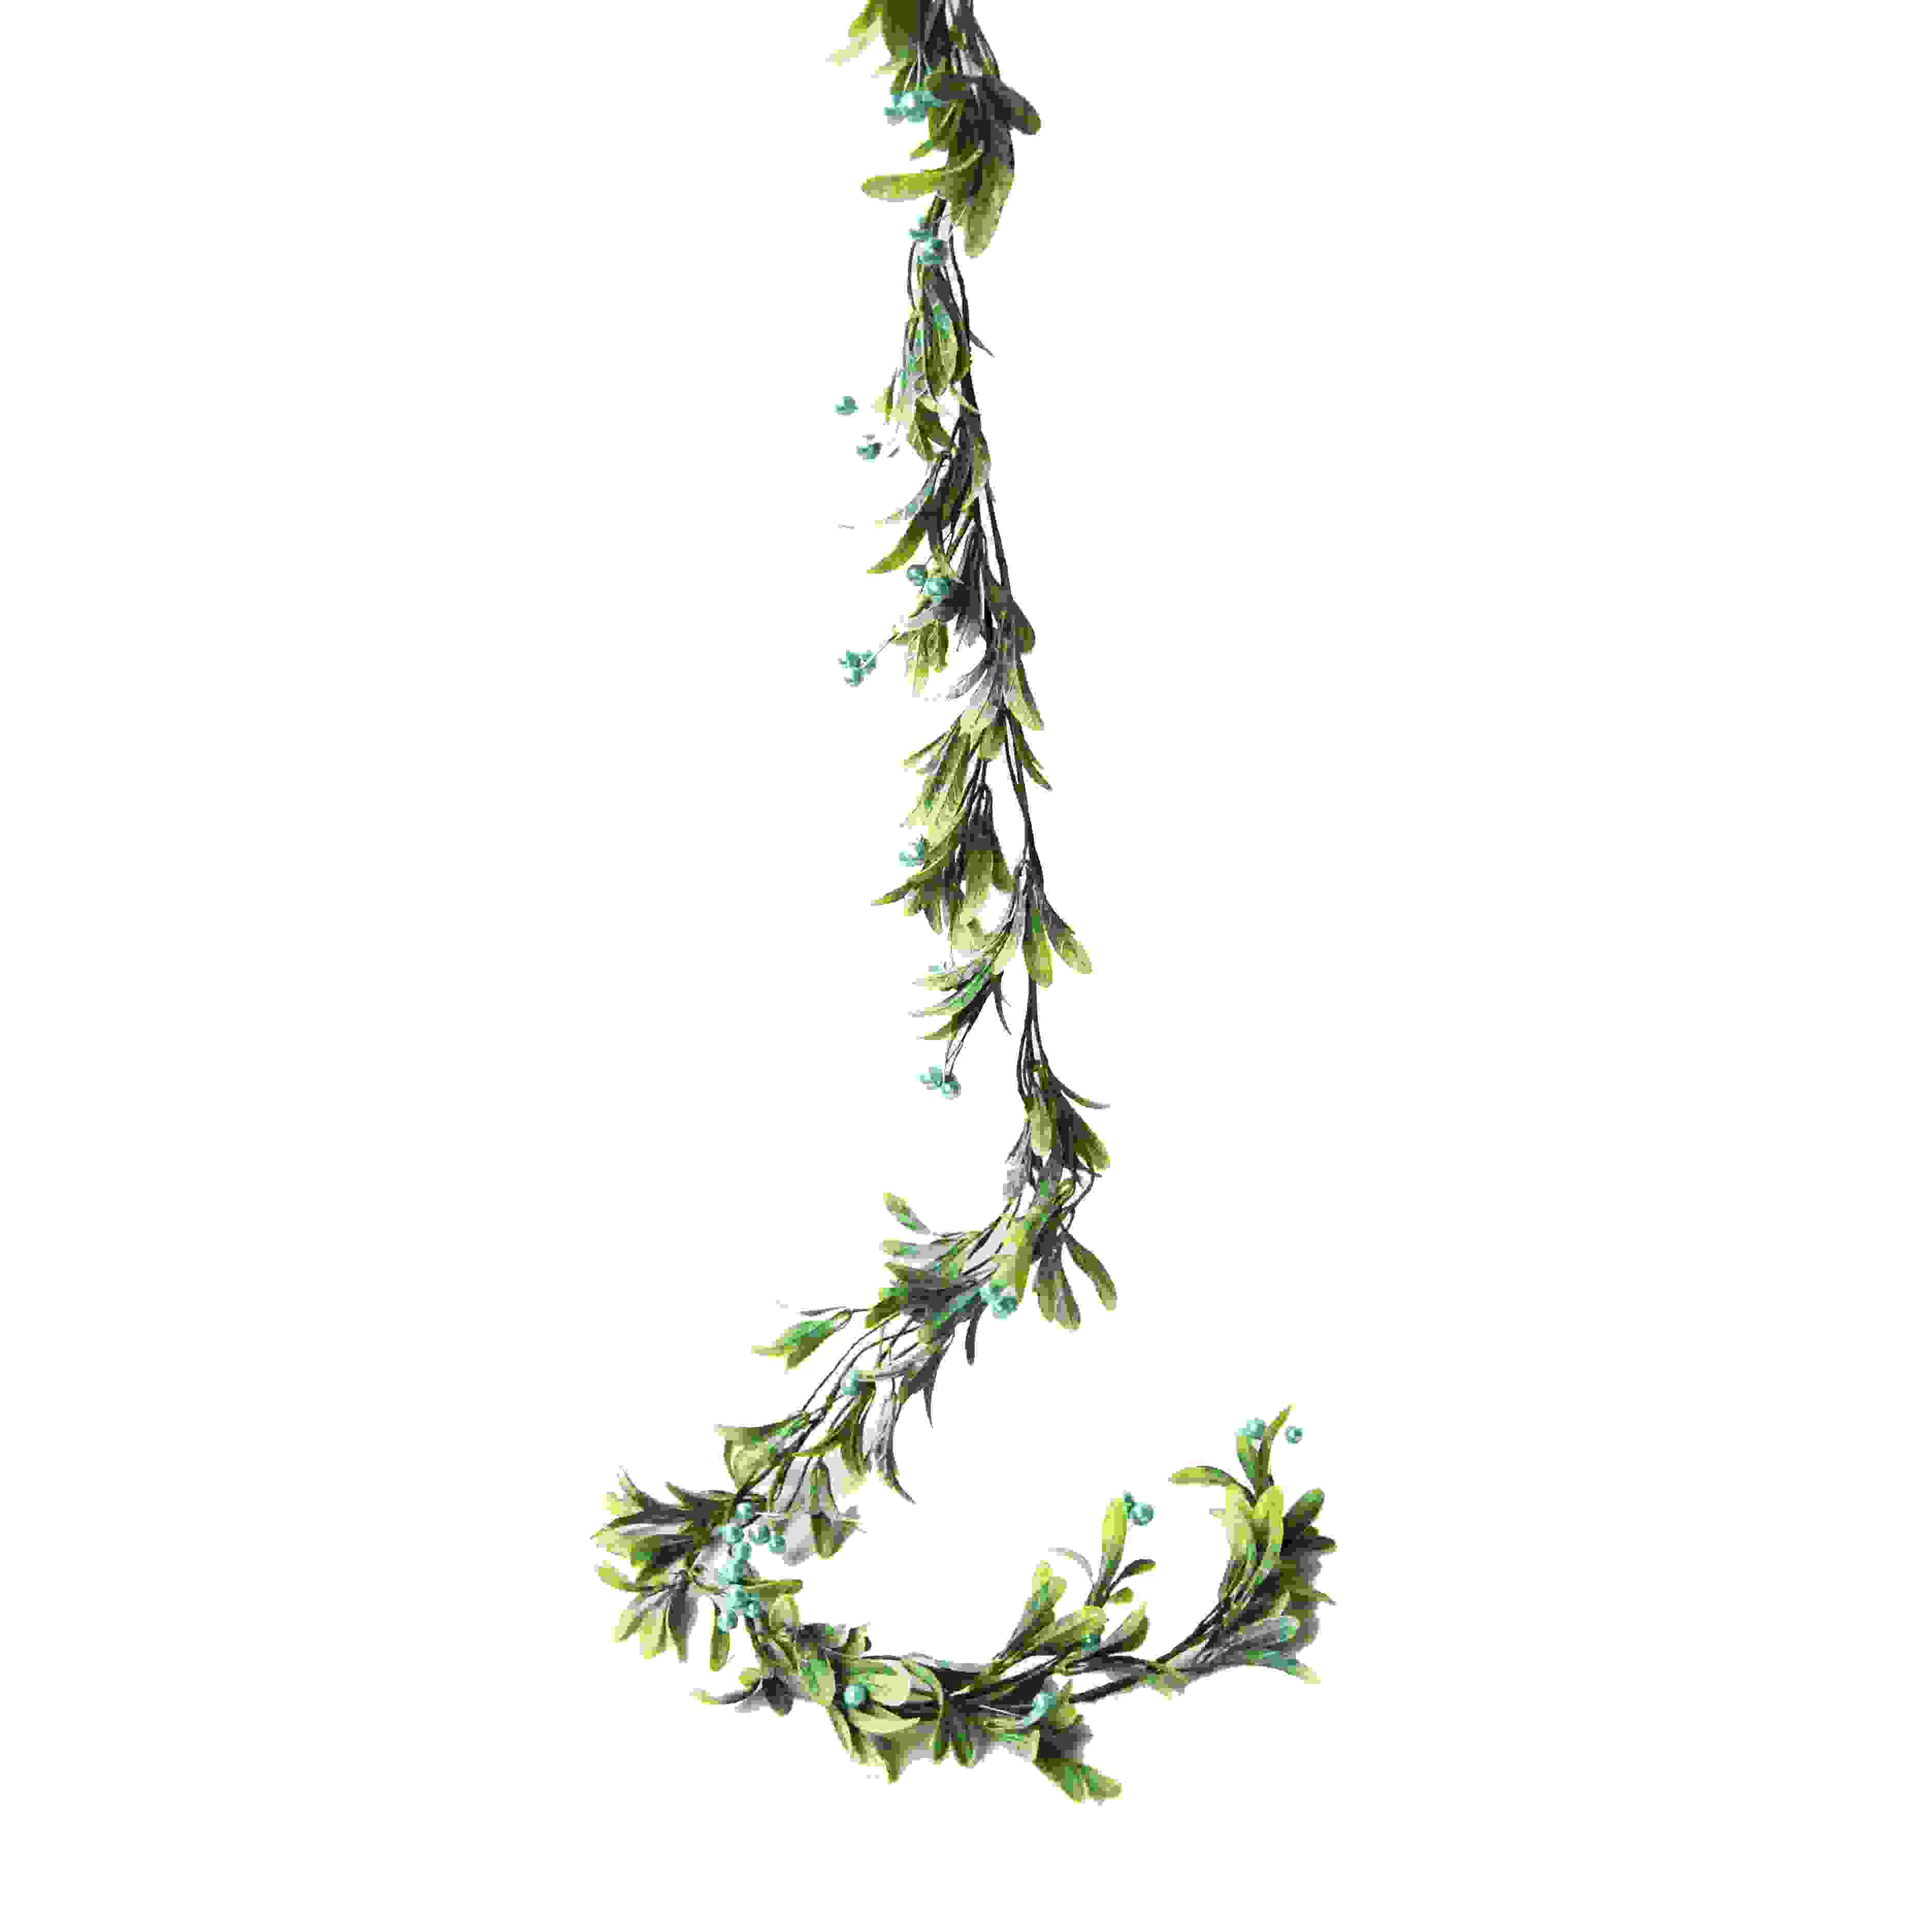 GARLAND 150cm BLUE BERRY/MISTLETOE